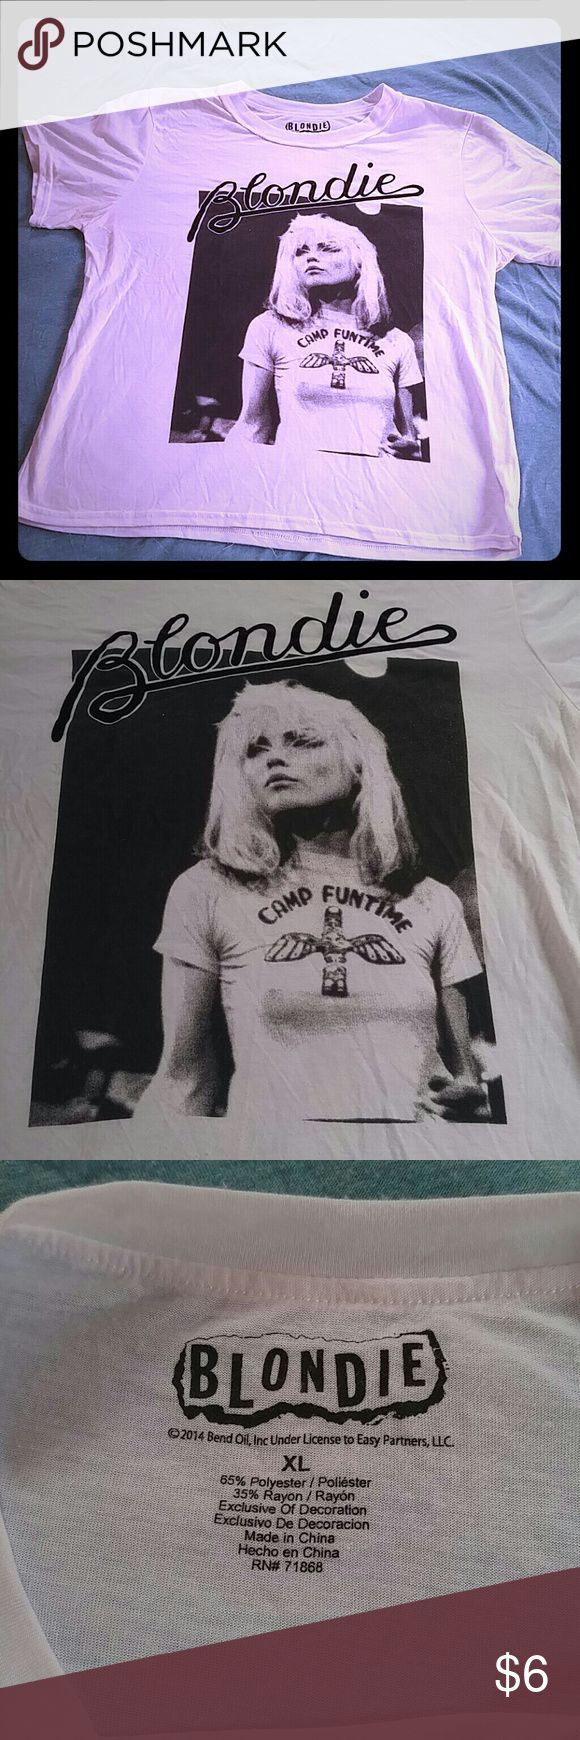 A fun funky Rock t-shirt Extra large white fun T-shirt with the singer Blondie on the front only worn a few times Tops Tees - Short Sleeve